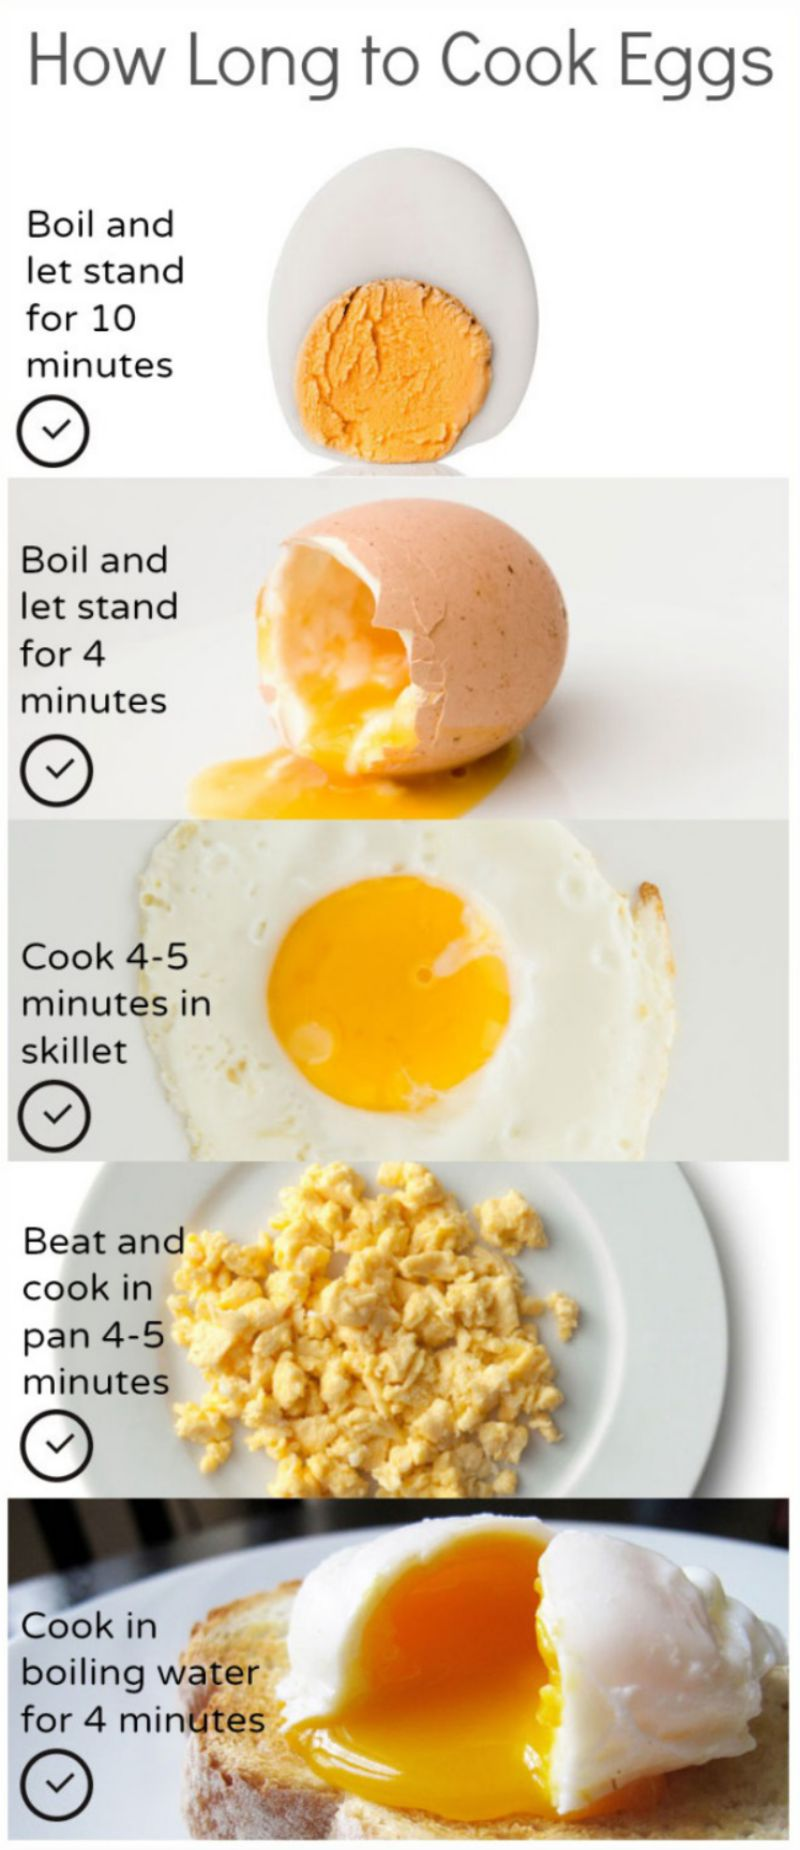 How Long to Cook Your Eggs